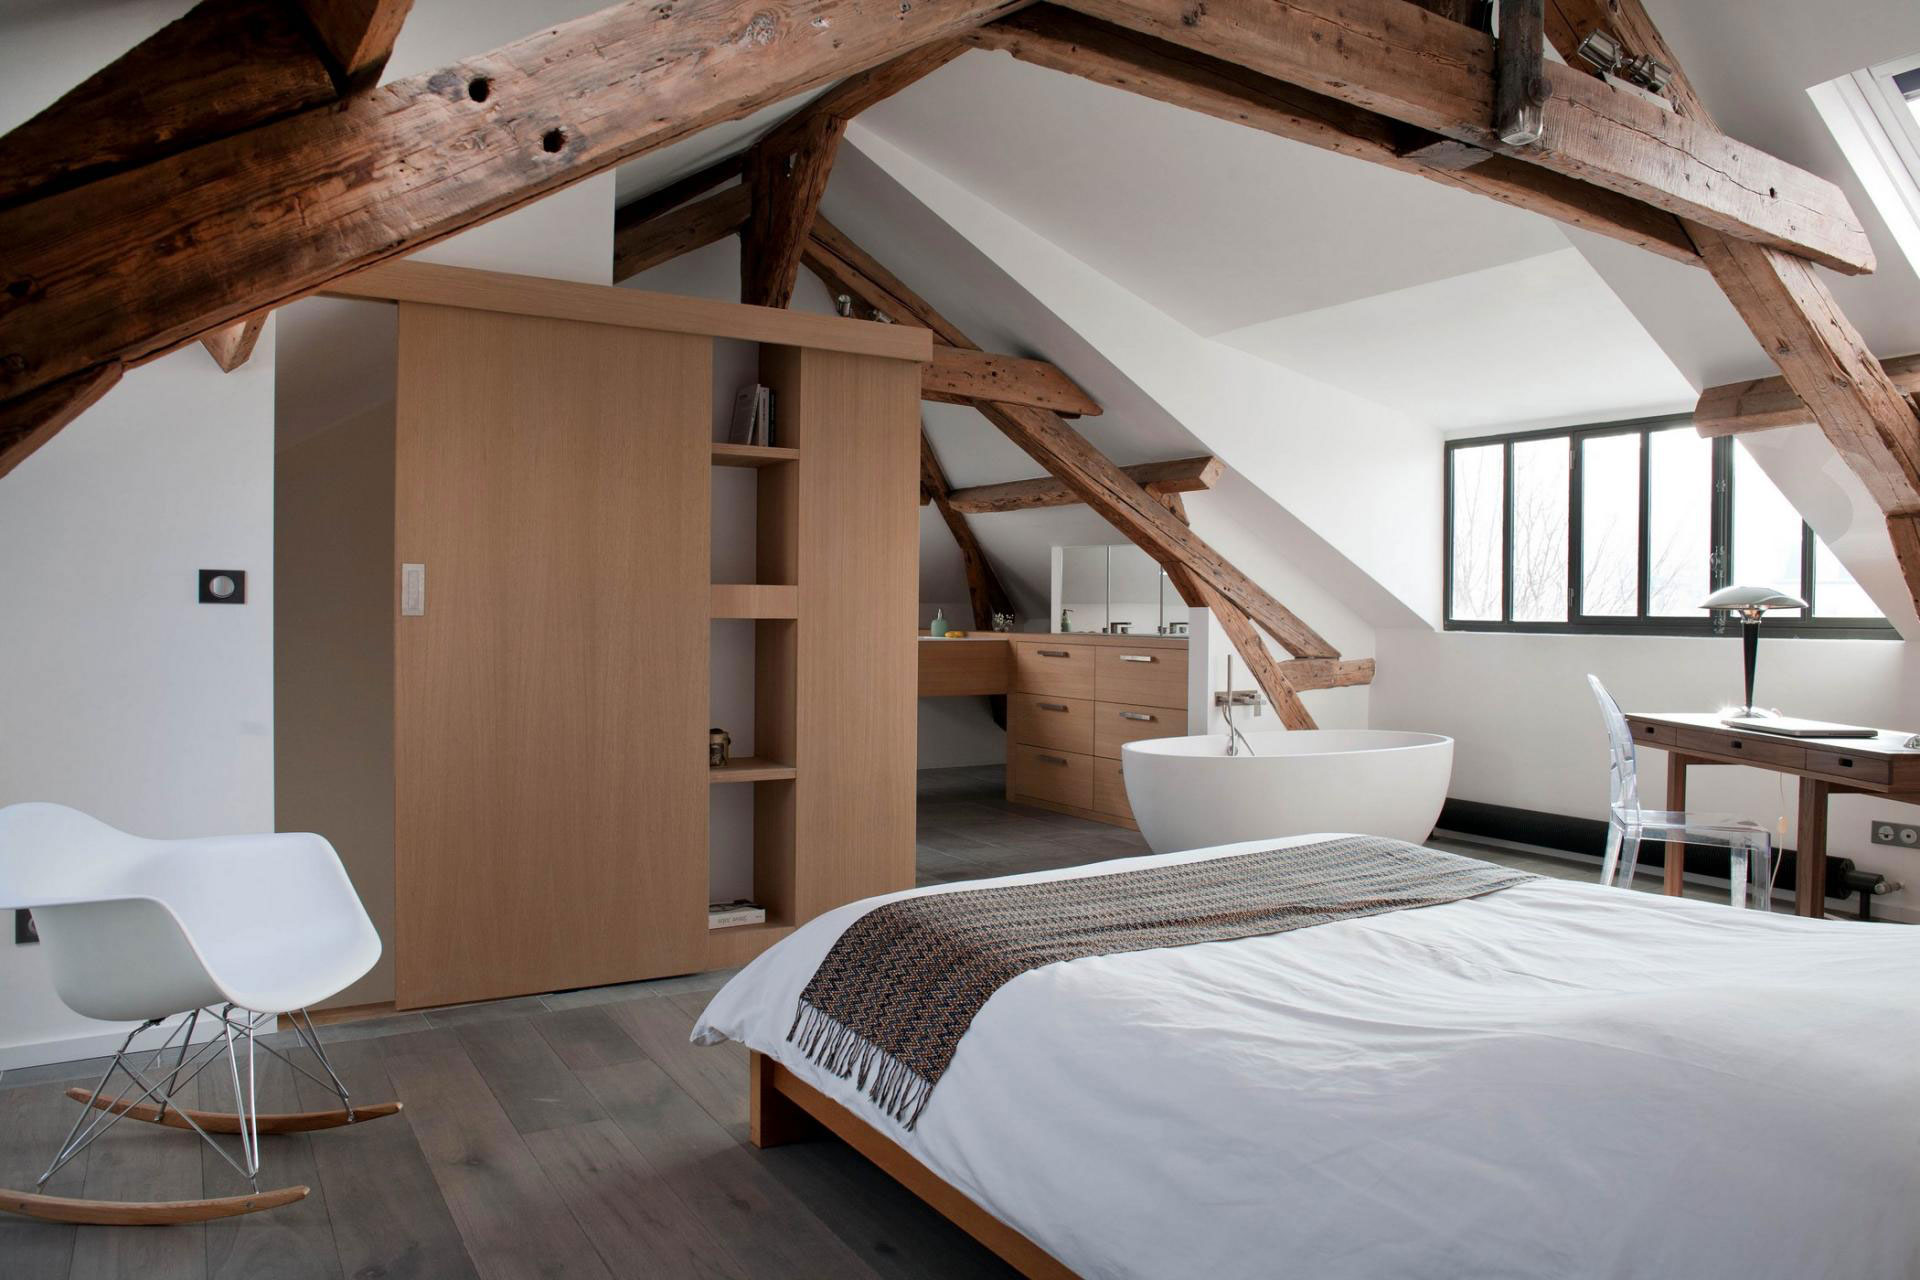 Olivier chabaud architecte designs a private residence in - Maison ancienne renovee olivier chabaud ...